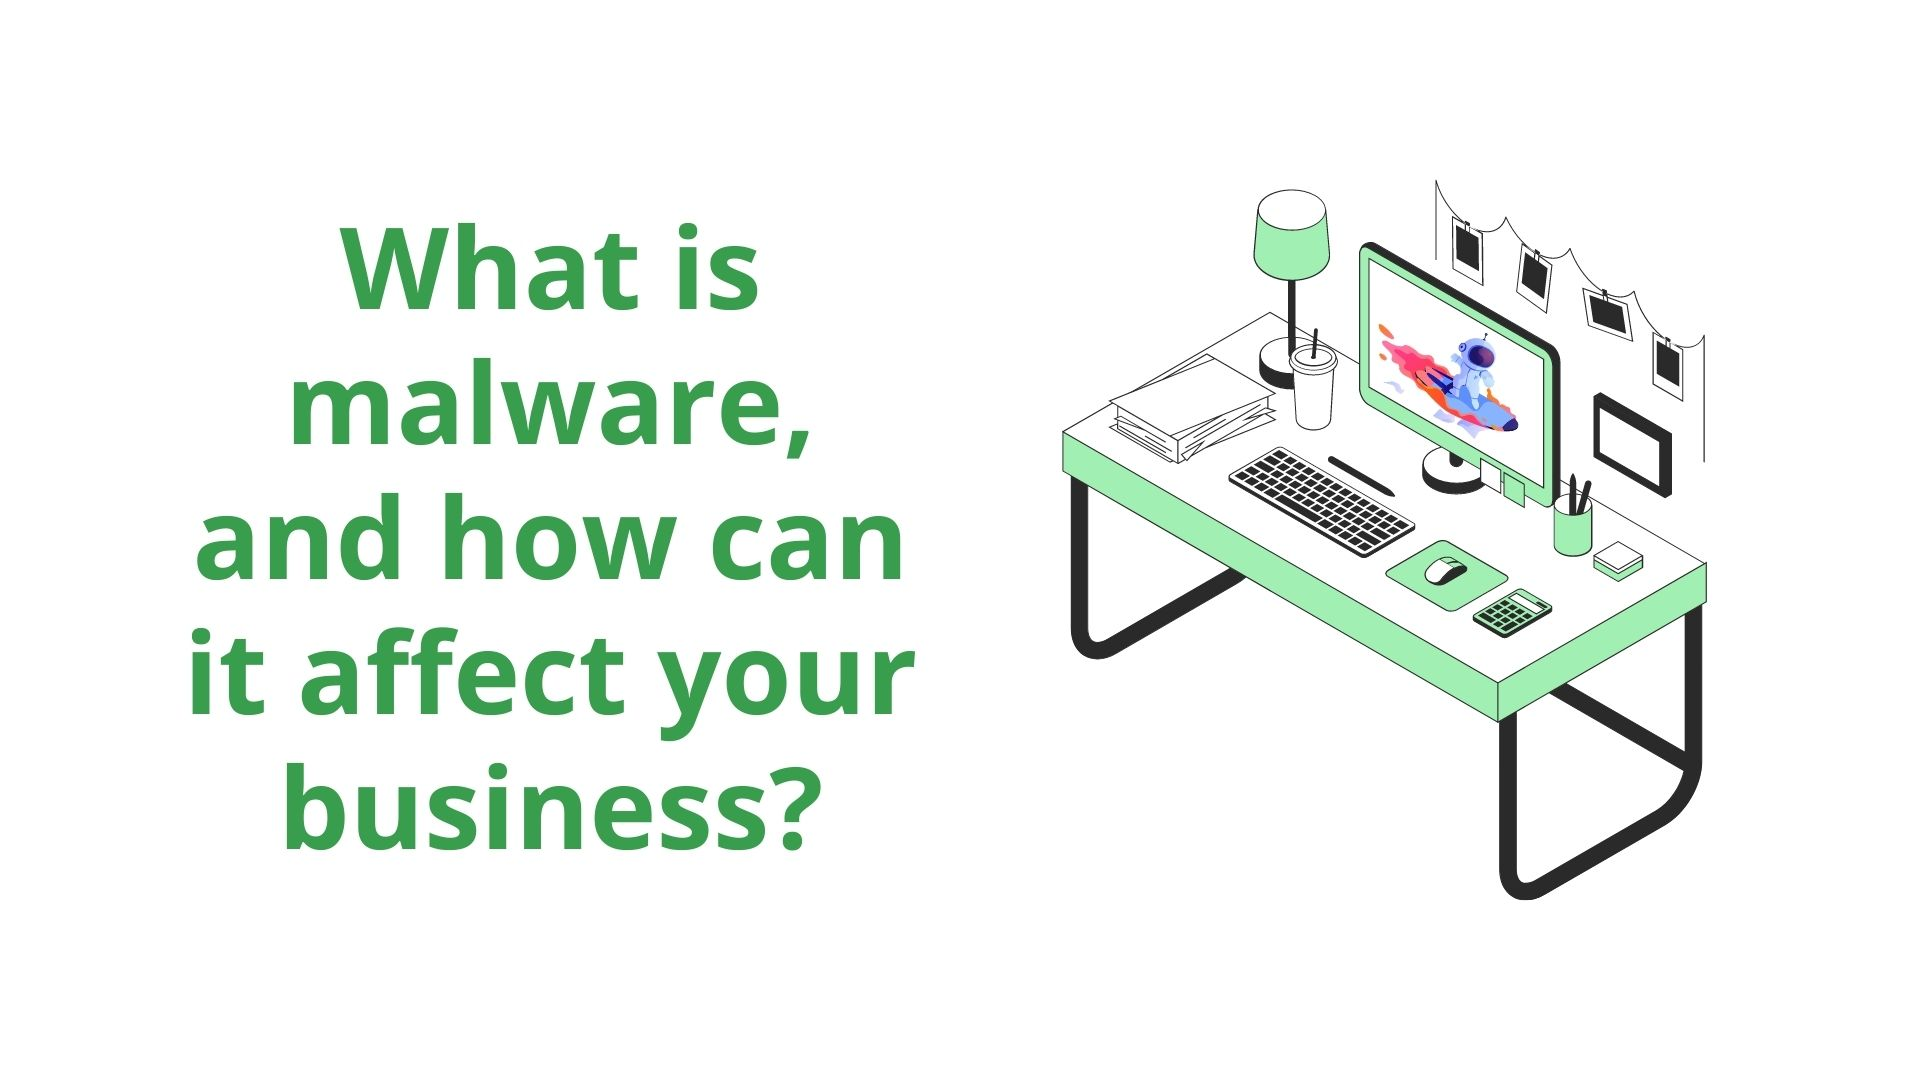 https://i.ibb.co/ThJF1G1/What-is-malware-and-how-can-it-affect-your-business.jpg